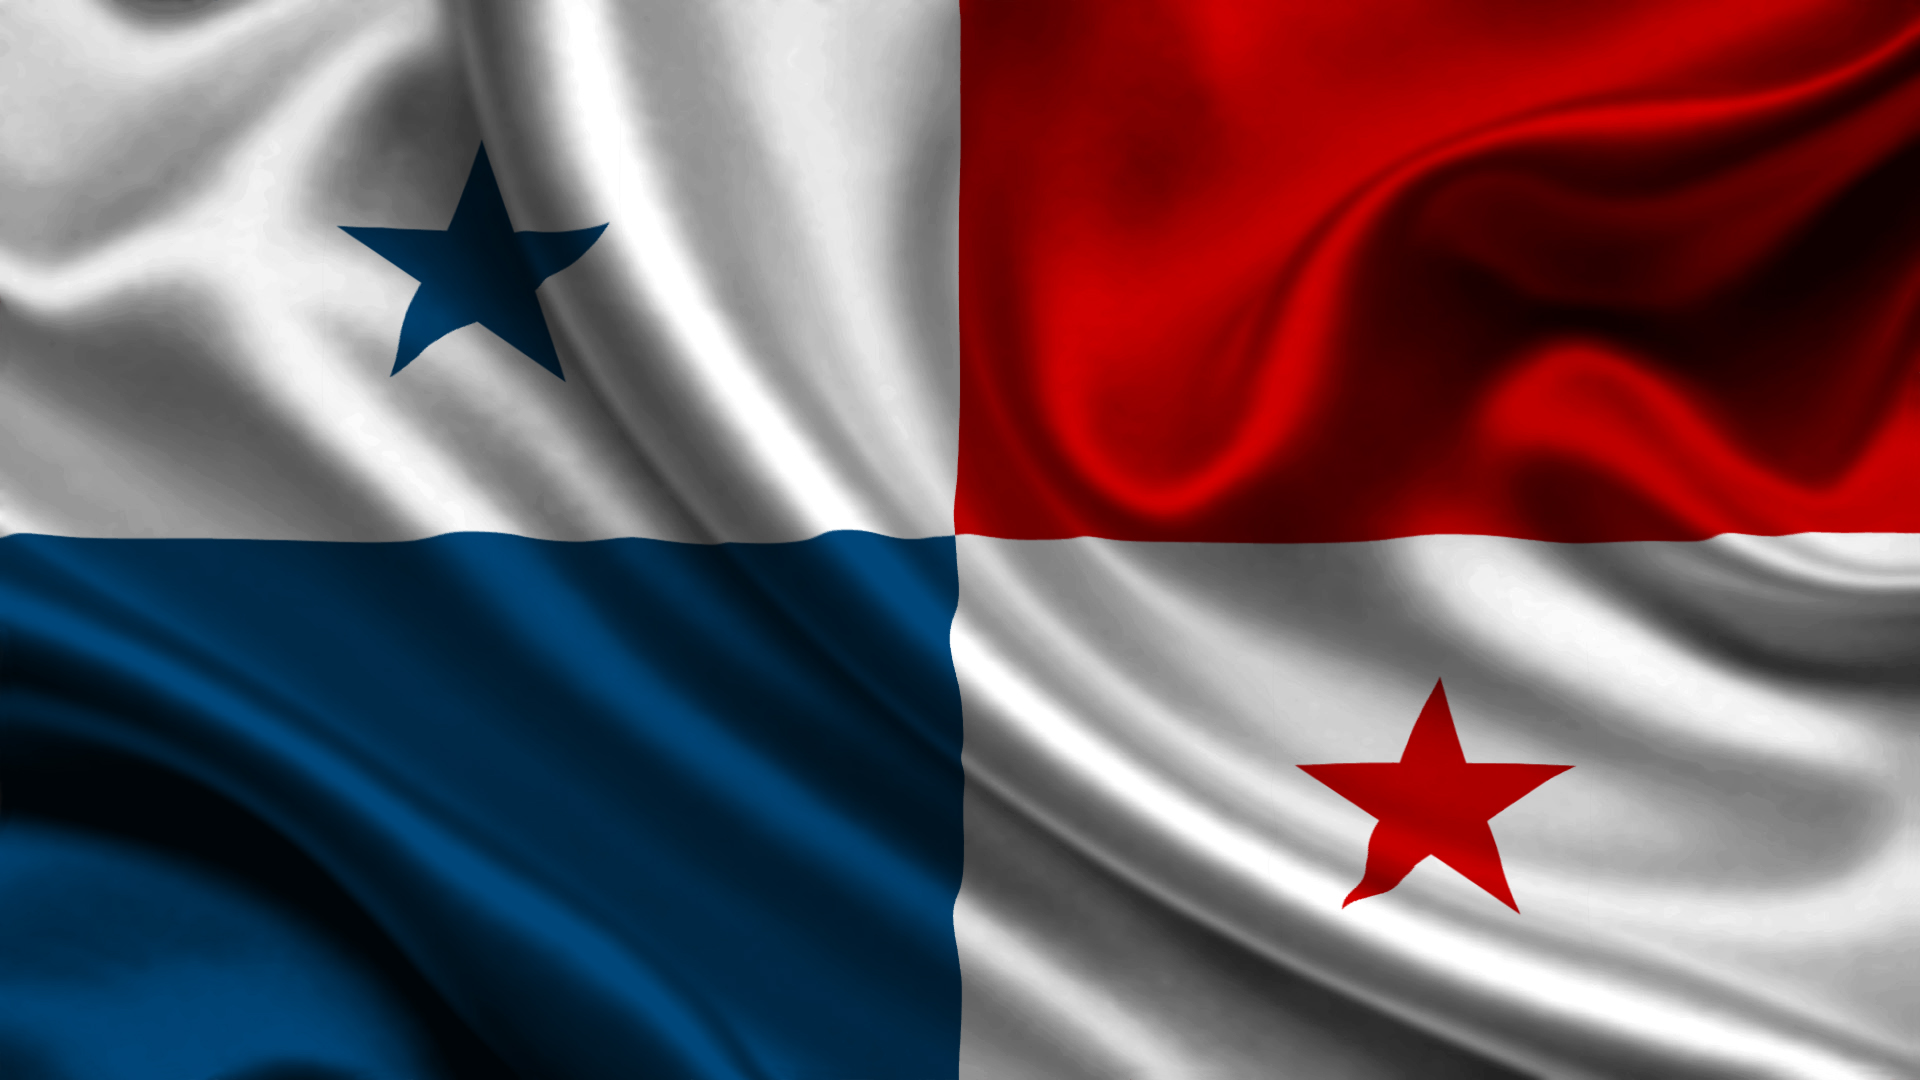 Panama-Flag-Wallpaper